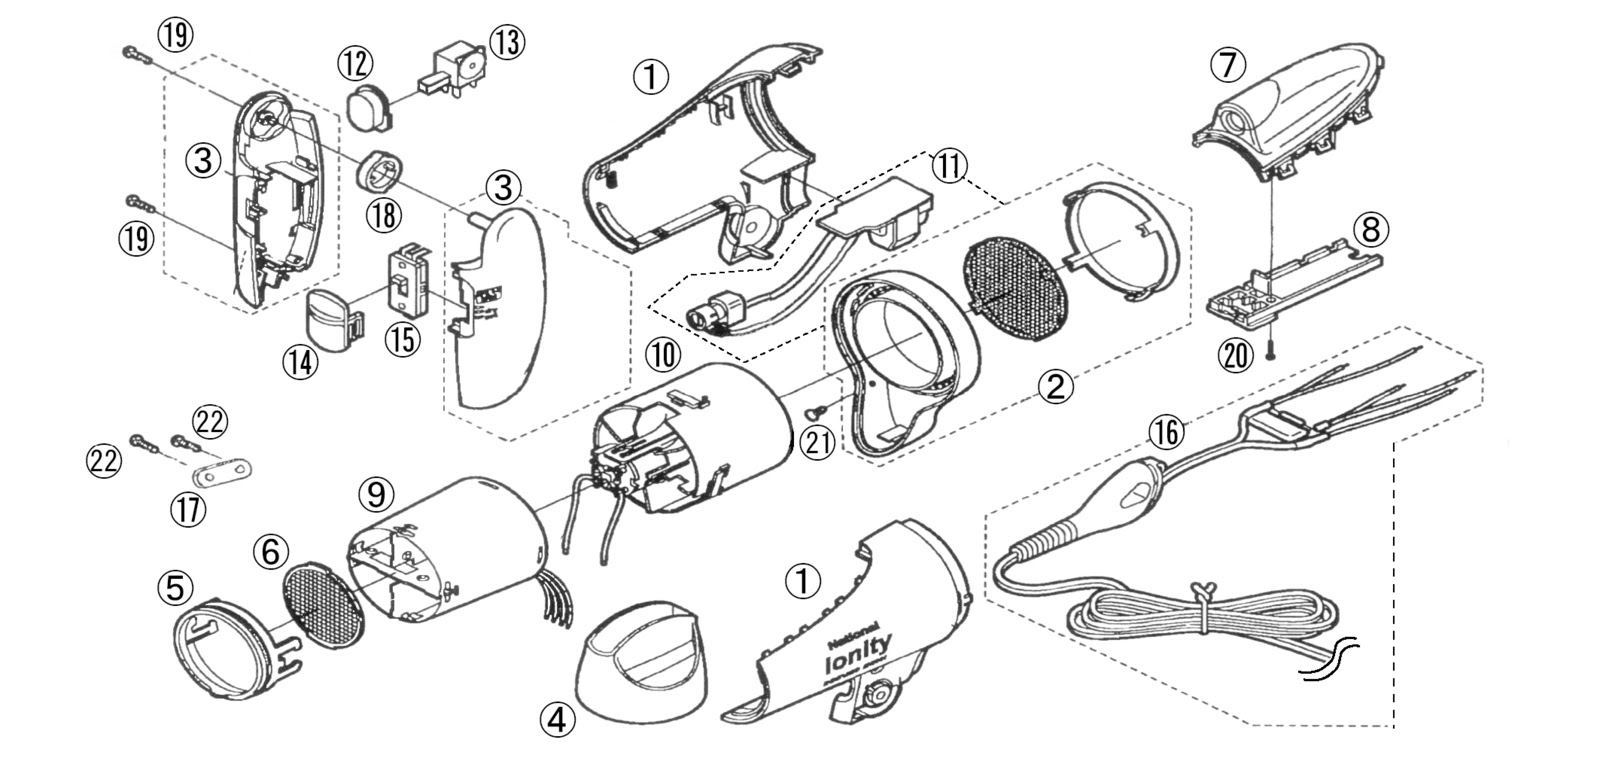 Wiring Diagram For Conair Hair Dryer Frigidaire Dryer